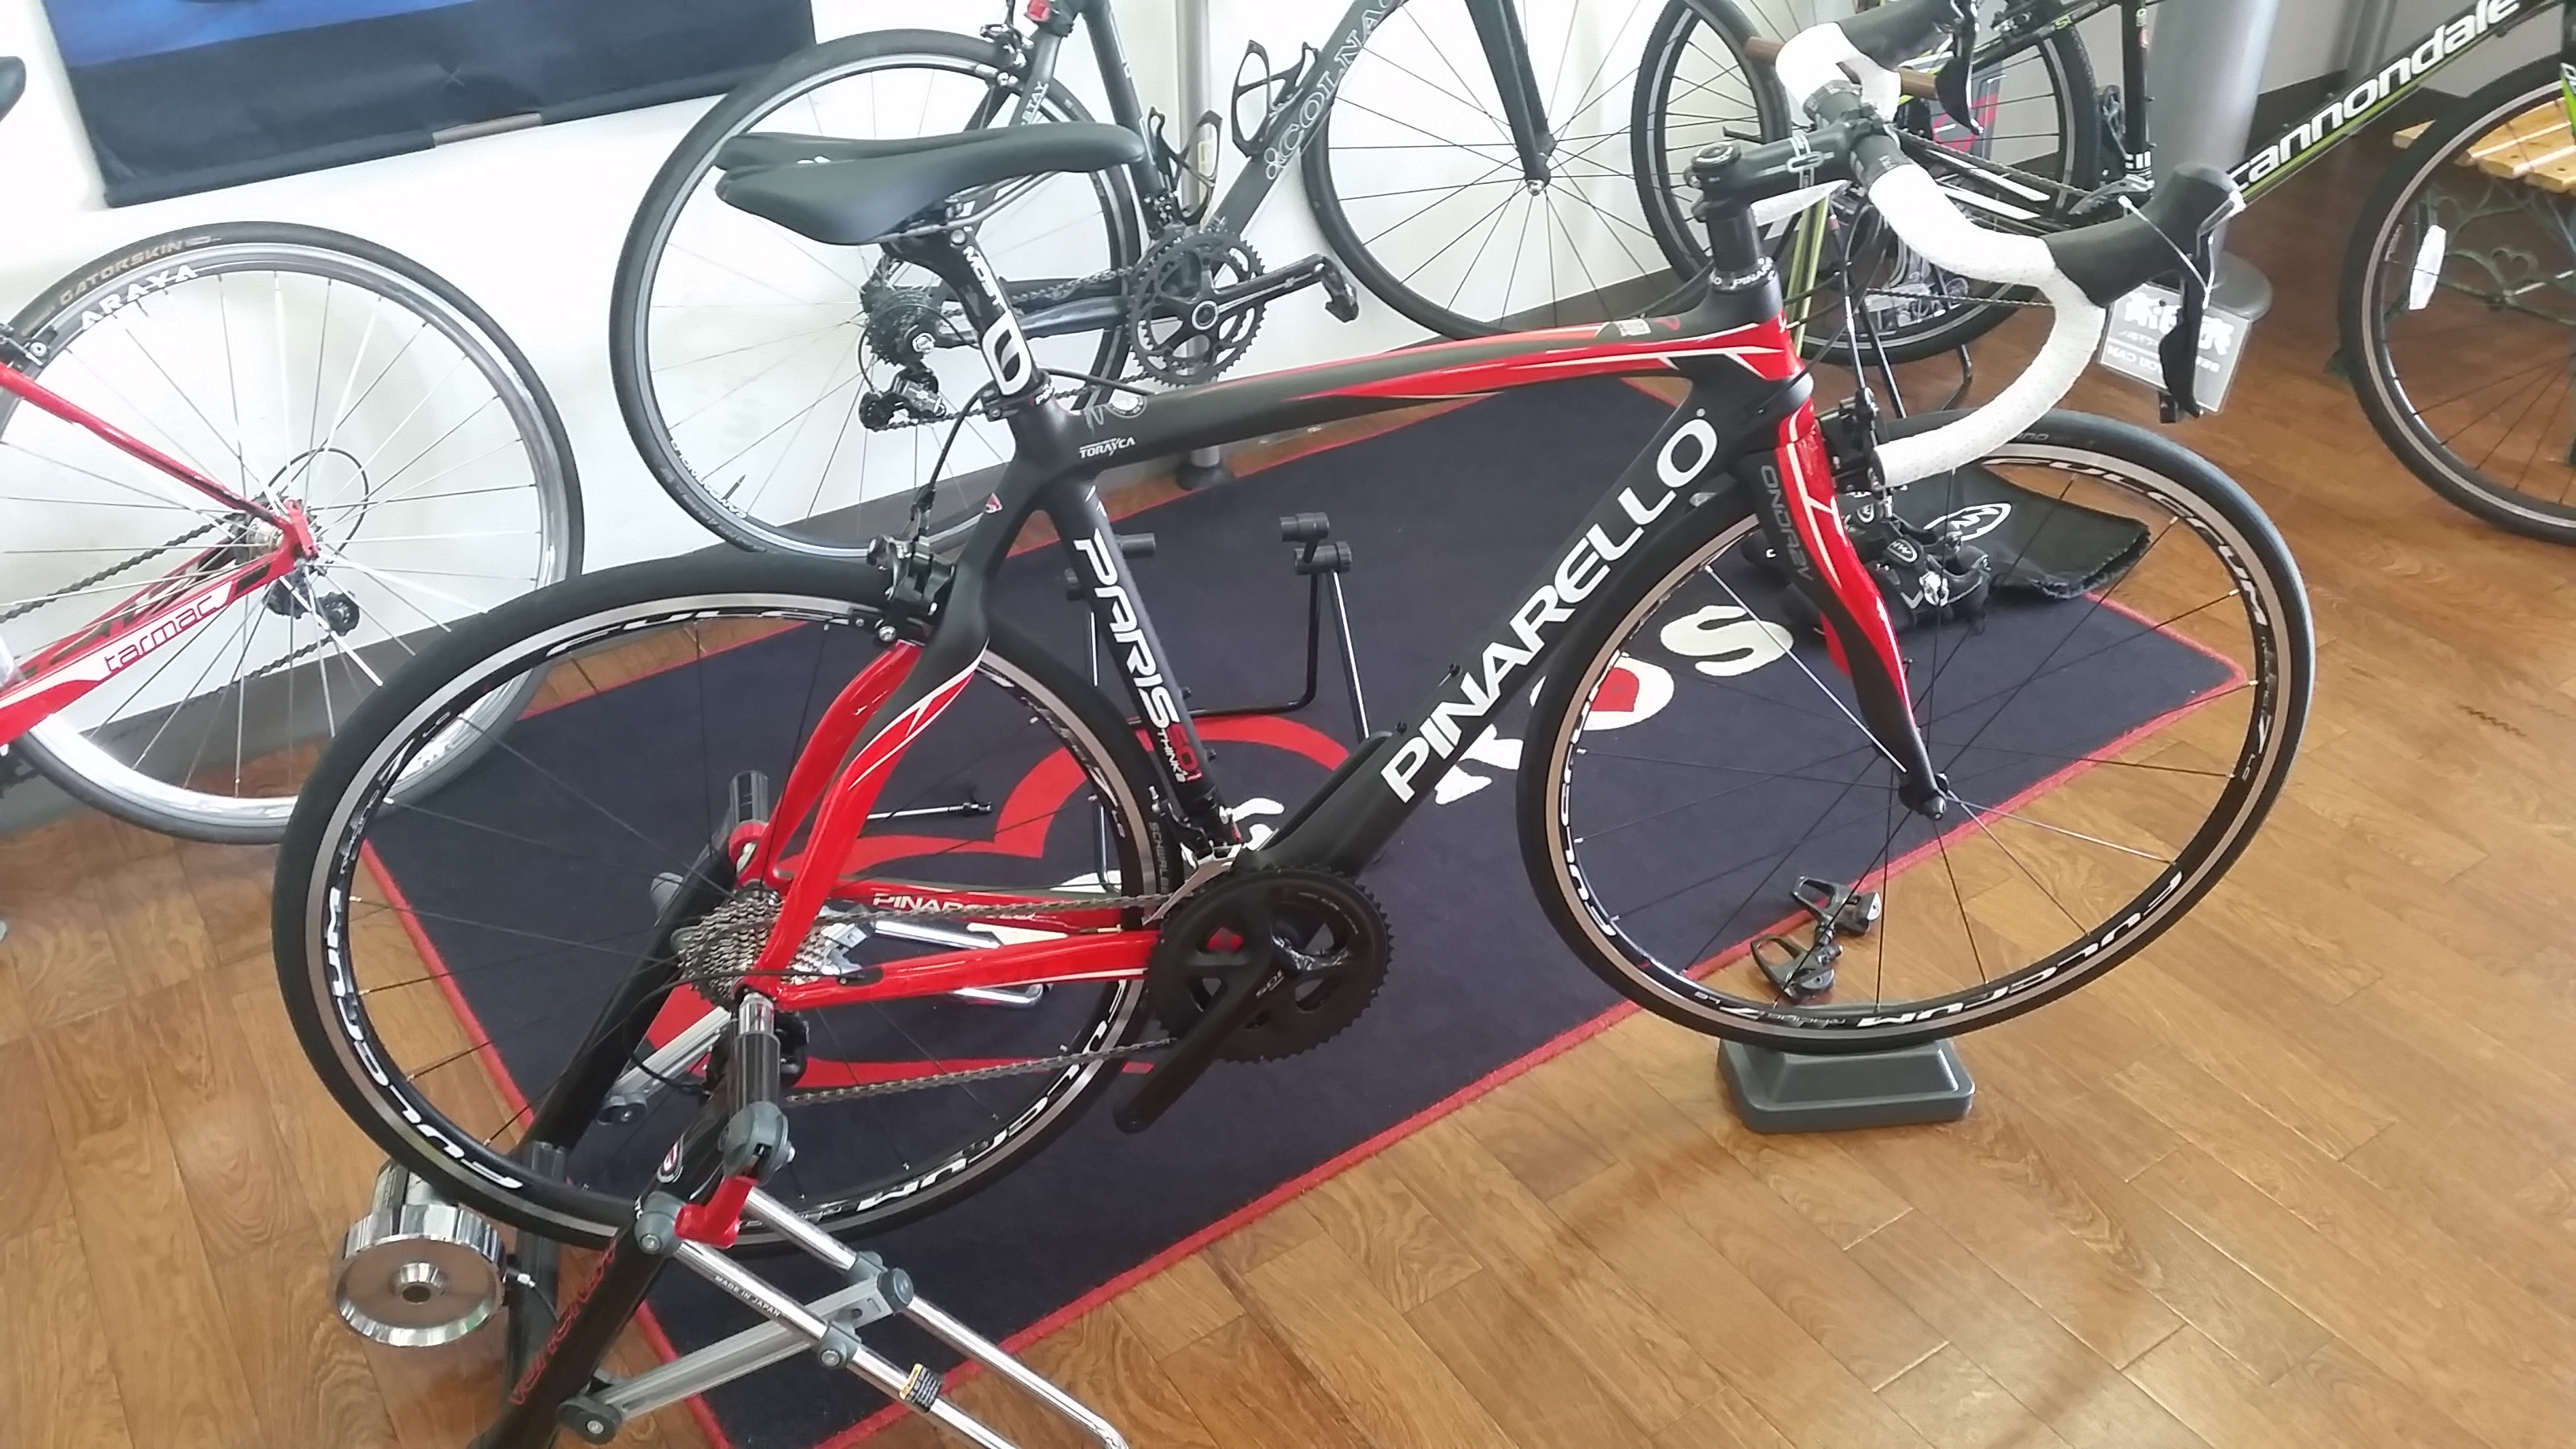 PINARELLO PARIS鳴子君